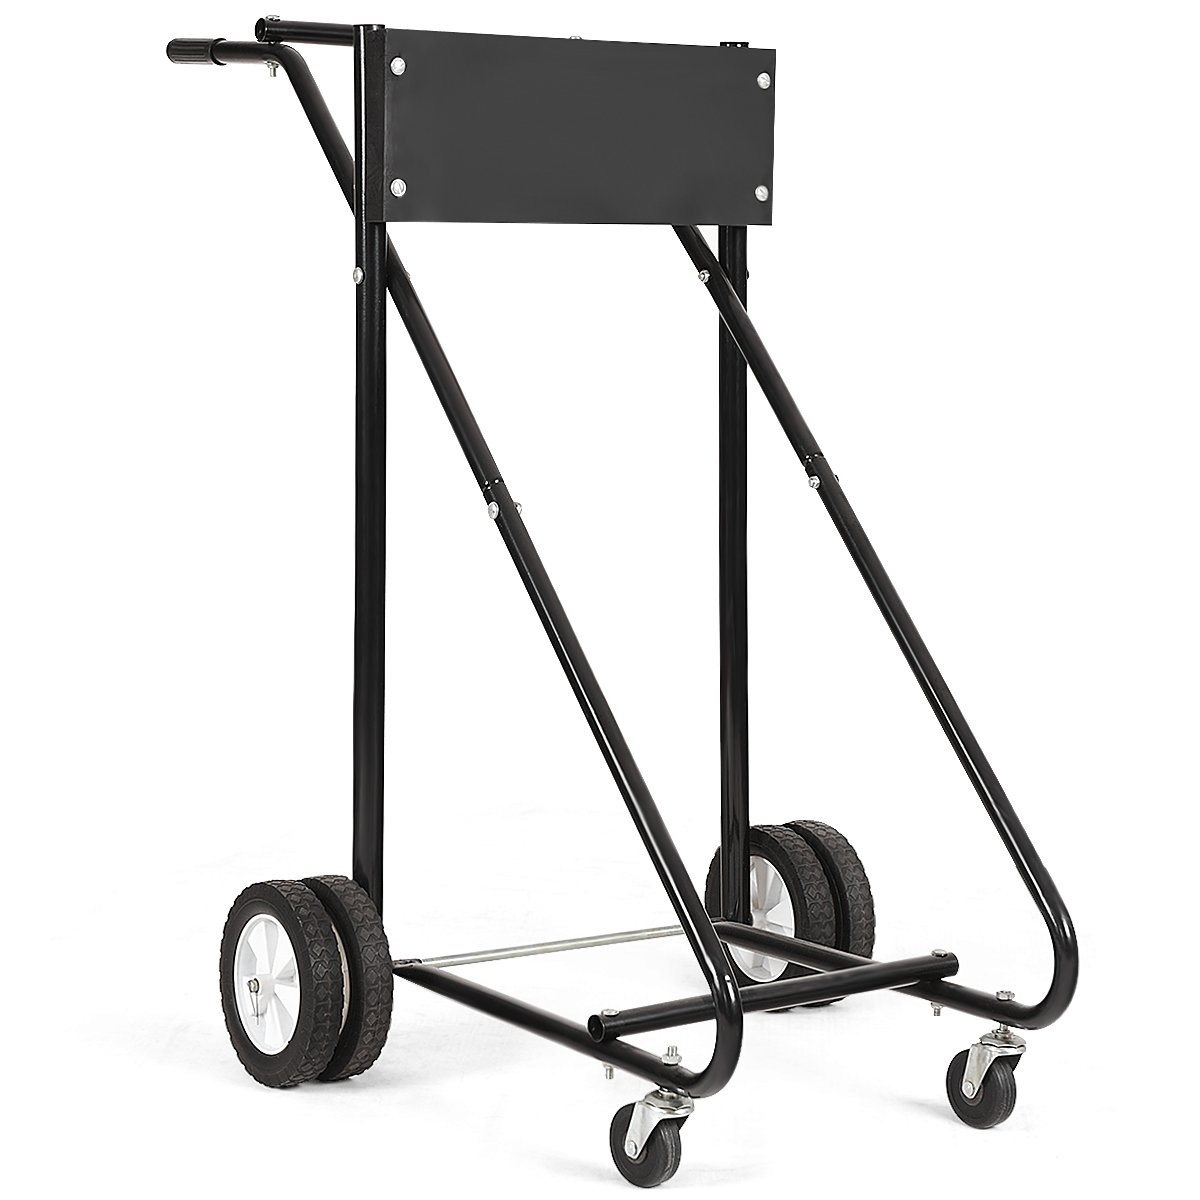 GOPLUS 310 LBS Outboard Boat Motor Stand Carrier Cart Dolly Storage Pro Heavy Duty by Goplus